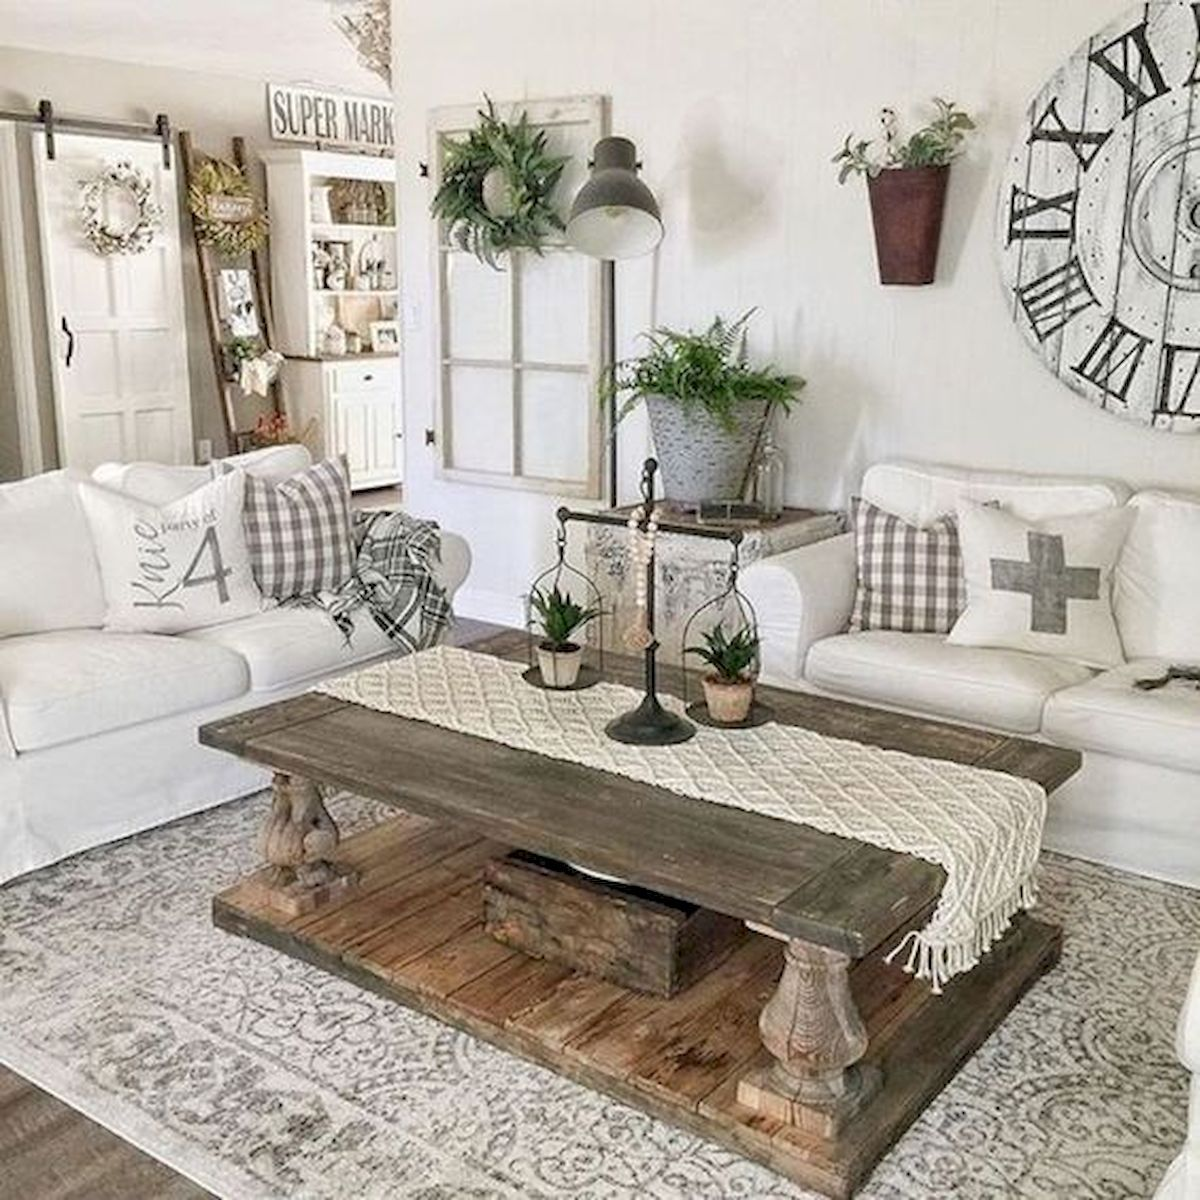 40 Best Cozy Farmhouse Living Room Lighting Lamps Decor: 40 BEST MODERN FARMHOUSE SOFA FAMILY ROOMS DECOR IDEAS AND